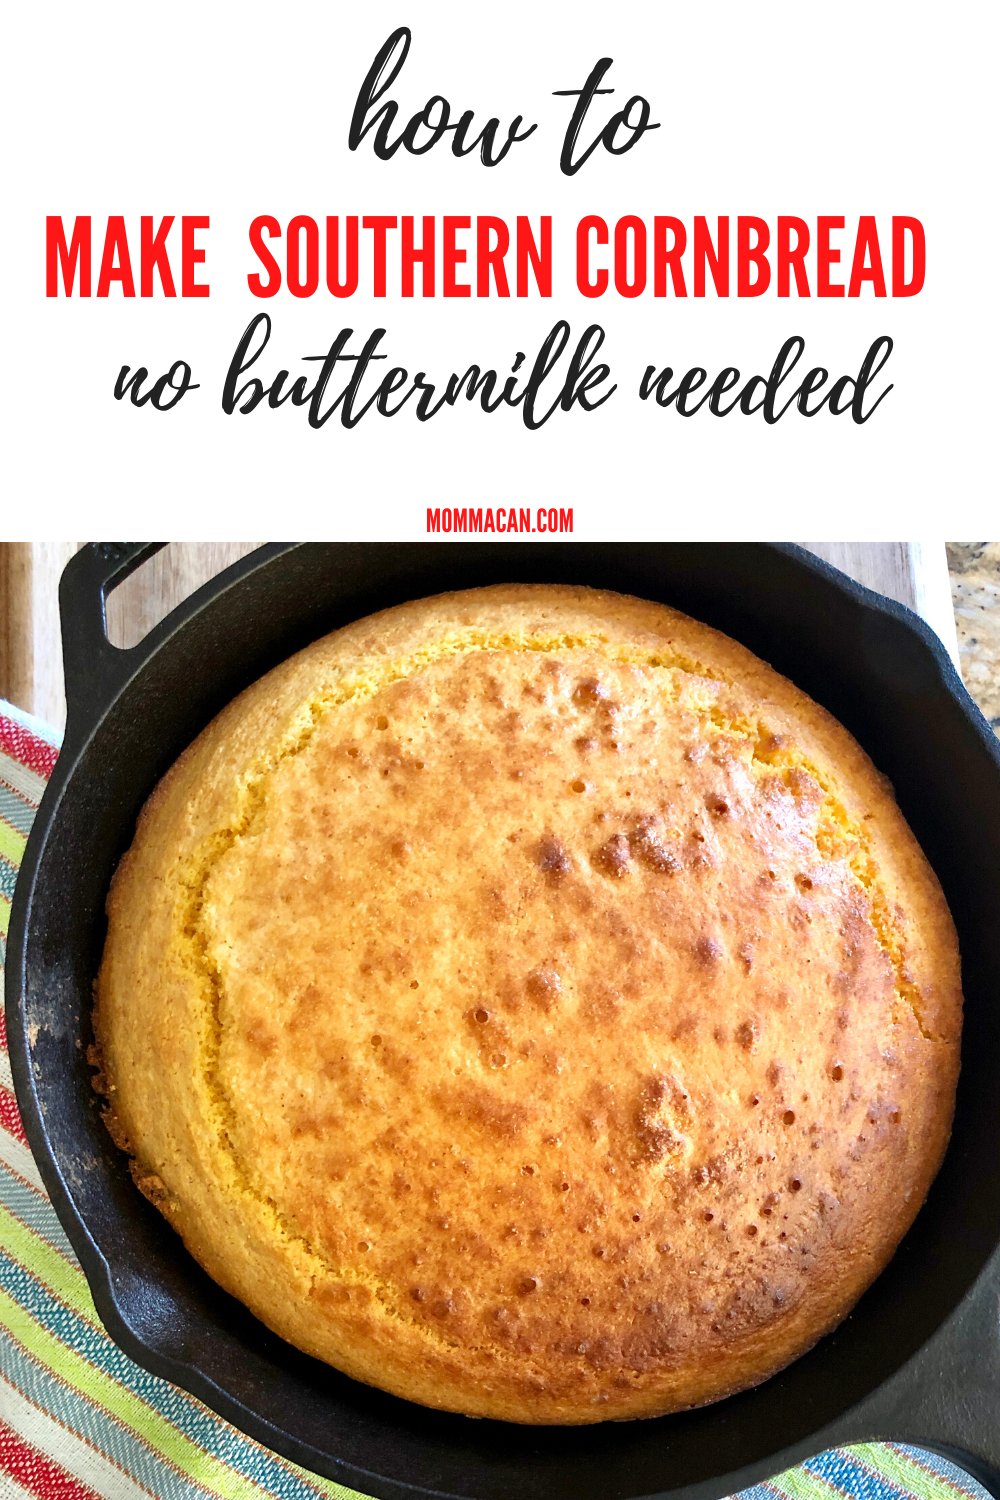 Southern Cornbread Without Buttermilk Recipe Recipe In 2020 Cornbread Recipe Sweet Buttermilk Recipes Best Cornbread Recipe